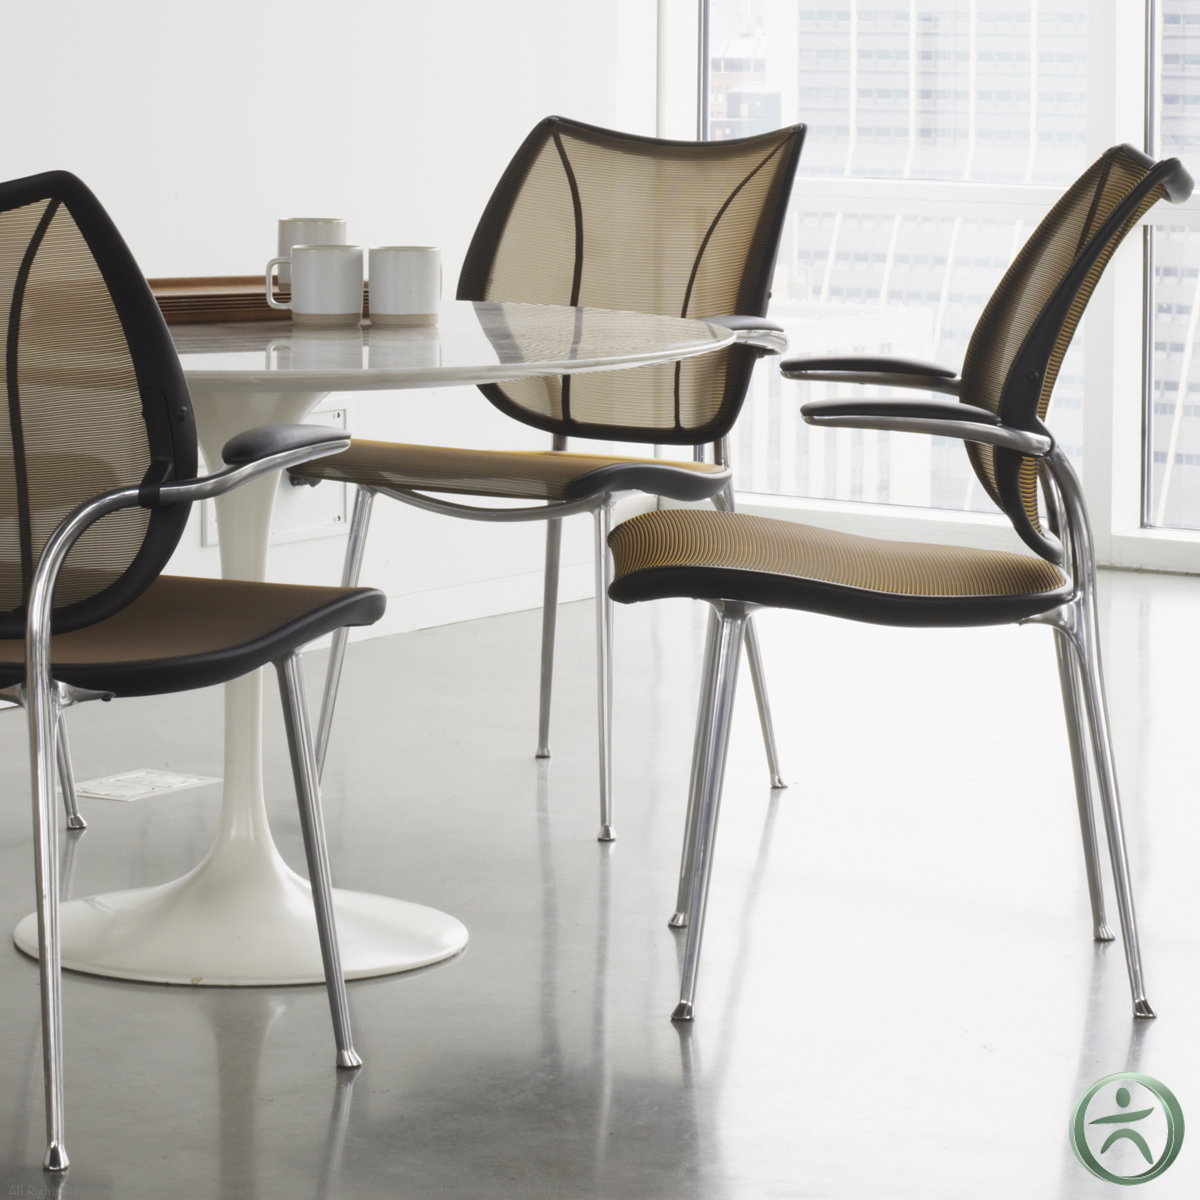 humanscale liberty chair review cover hire aberdare side